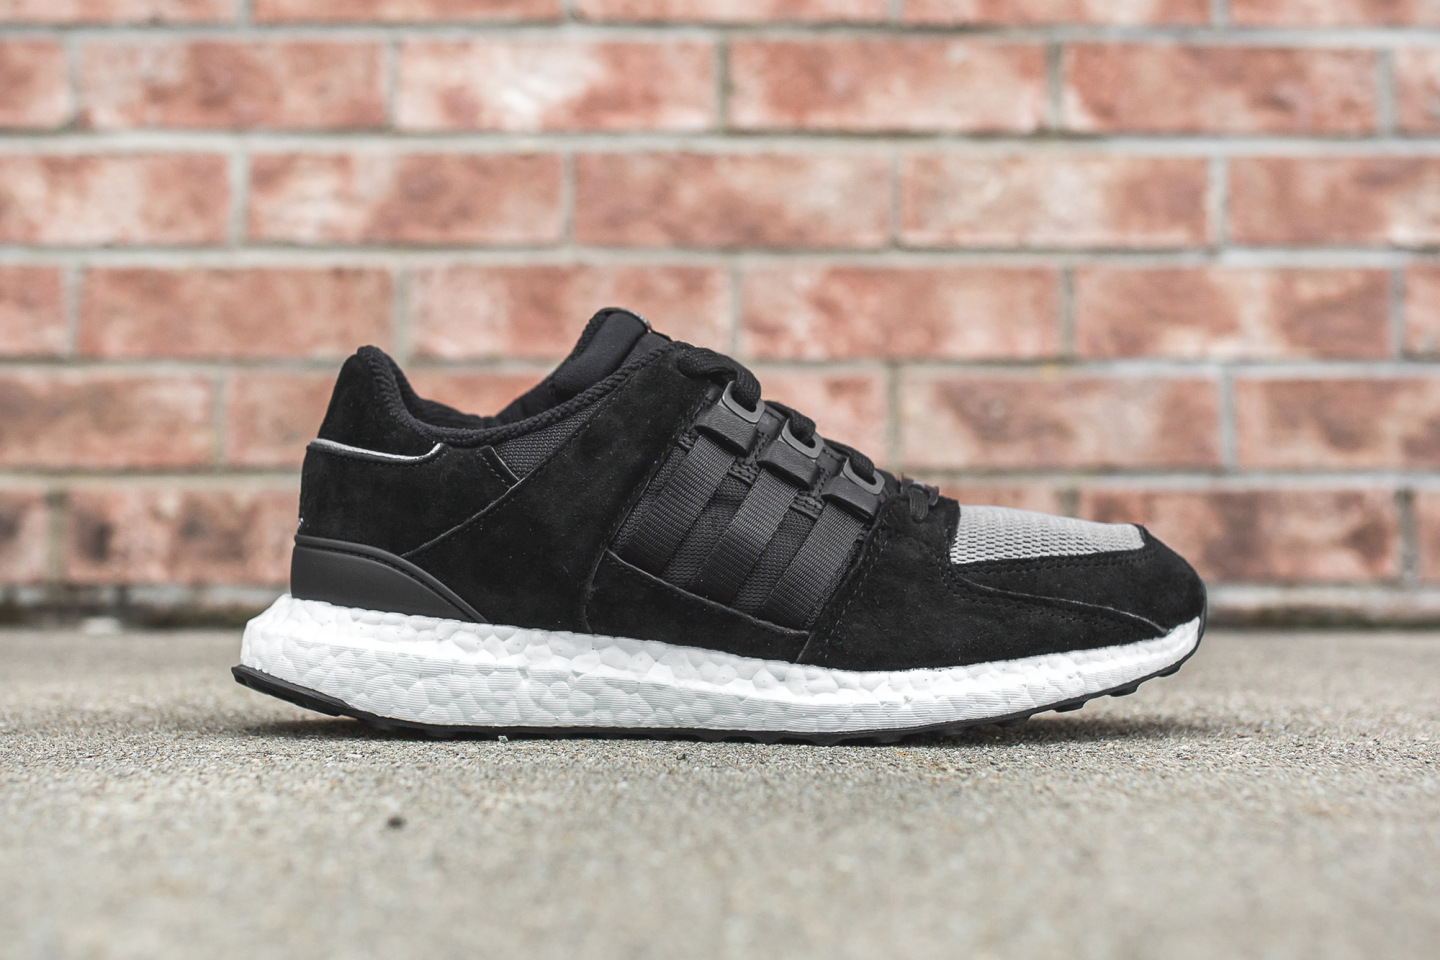 the best attitude 660dc dce56 adidas-consortium-x-concepts-eqt-support-9316-7 - WearTesters